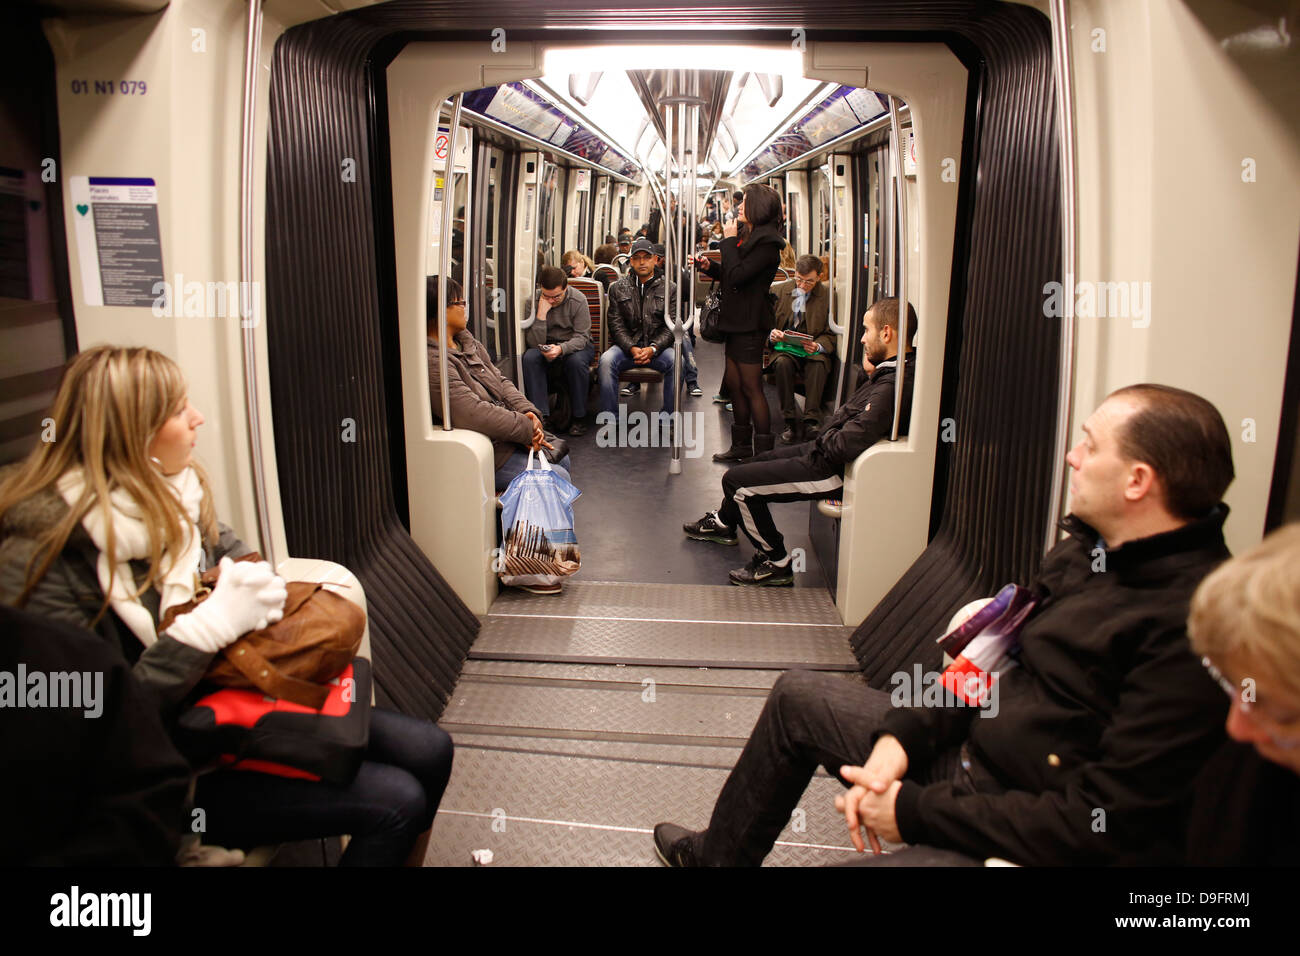 Passengers on the Paris Metro, Paris, France - Stock Image